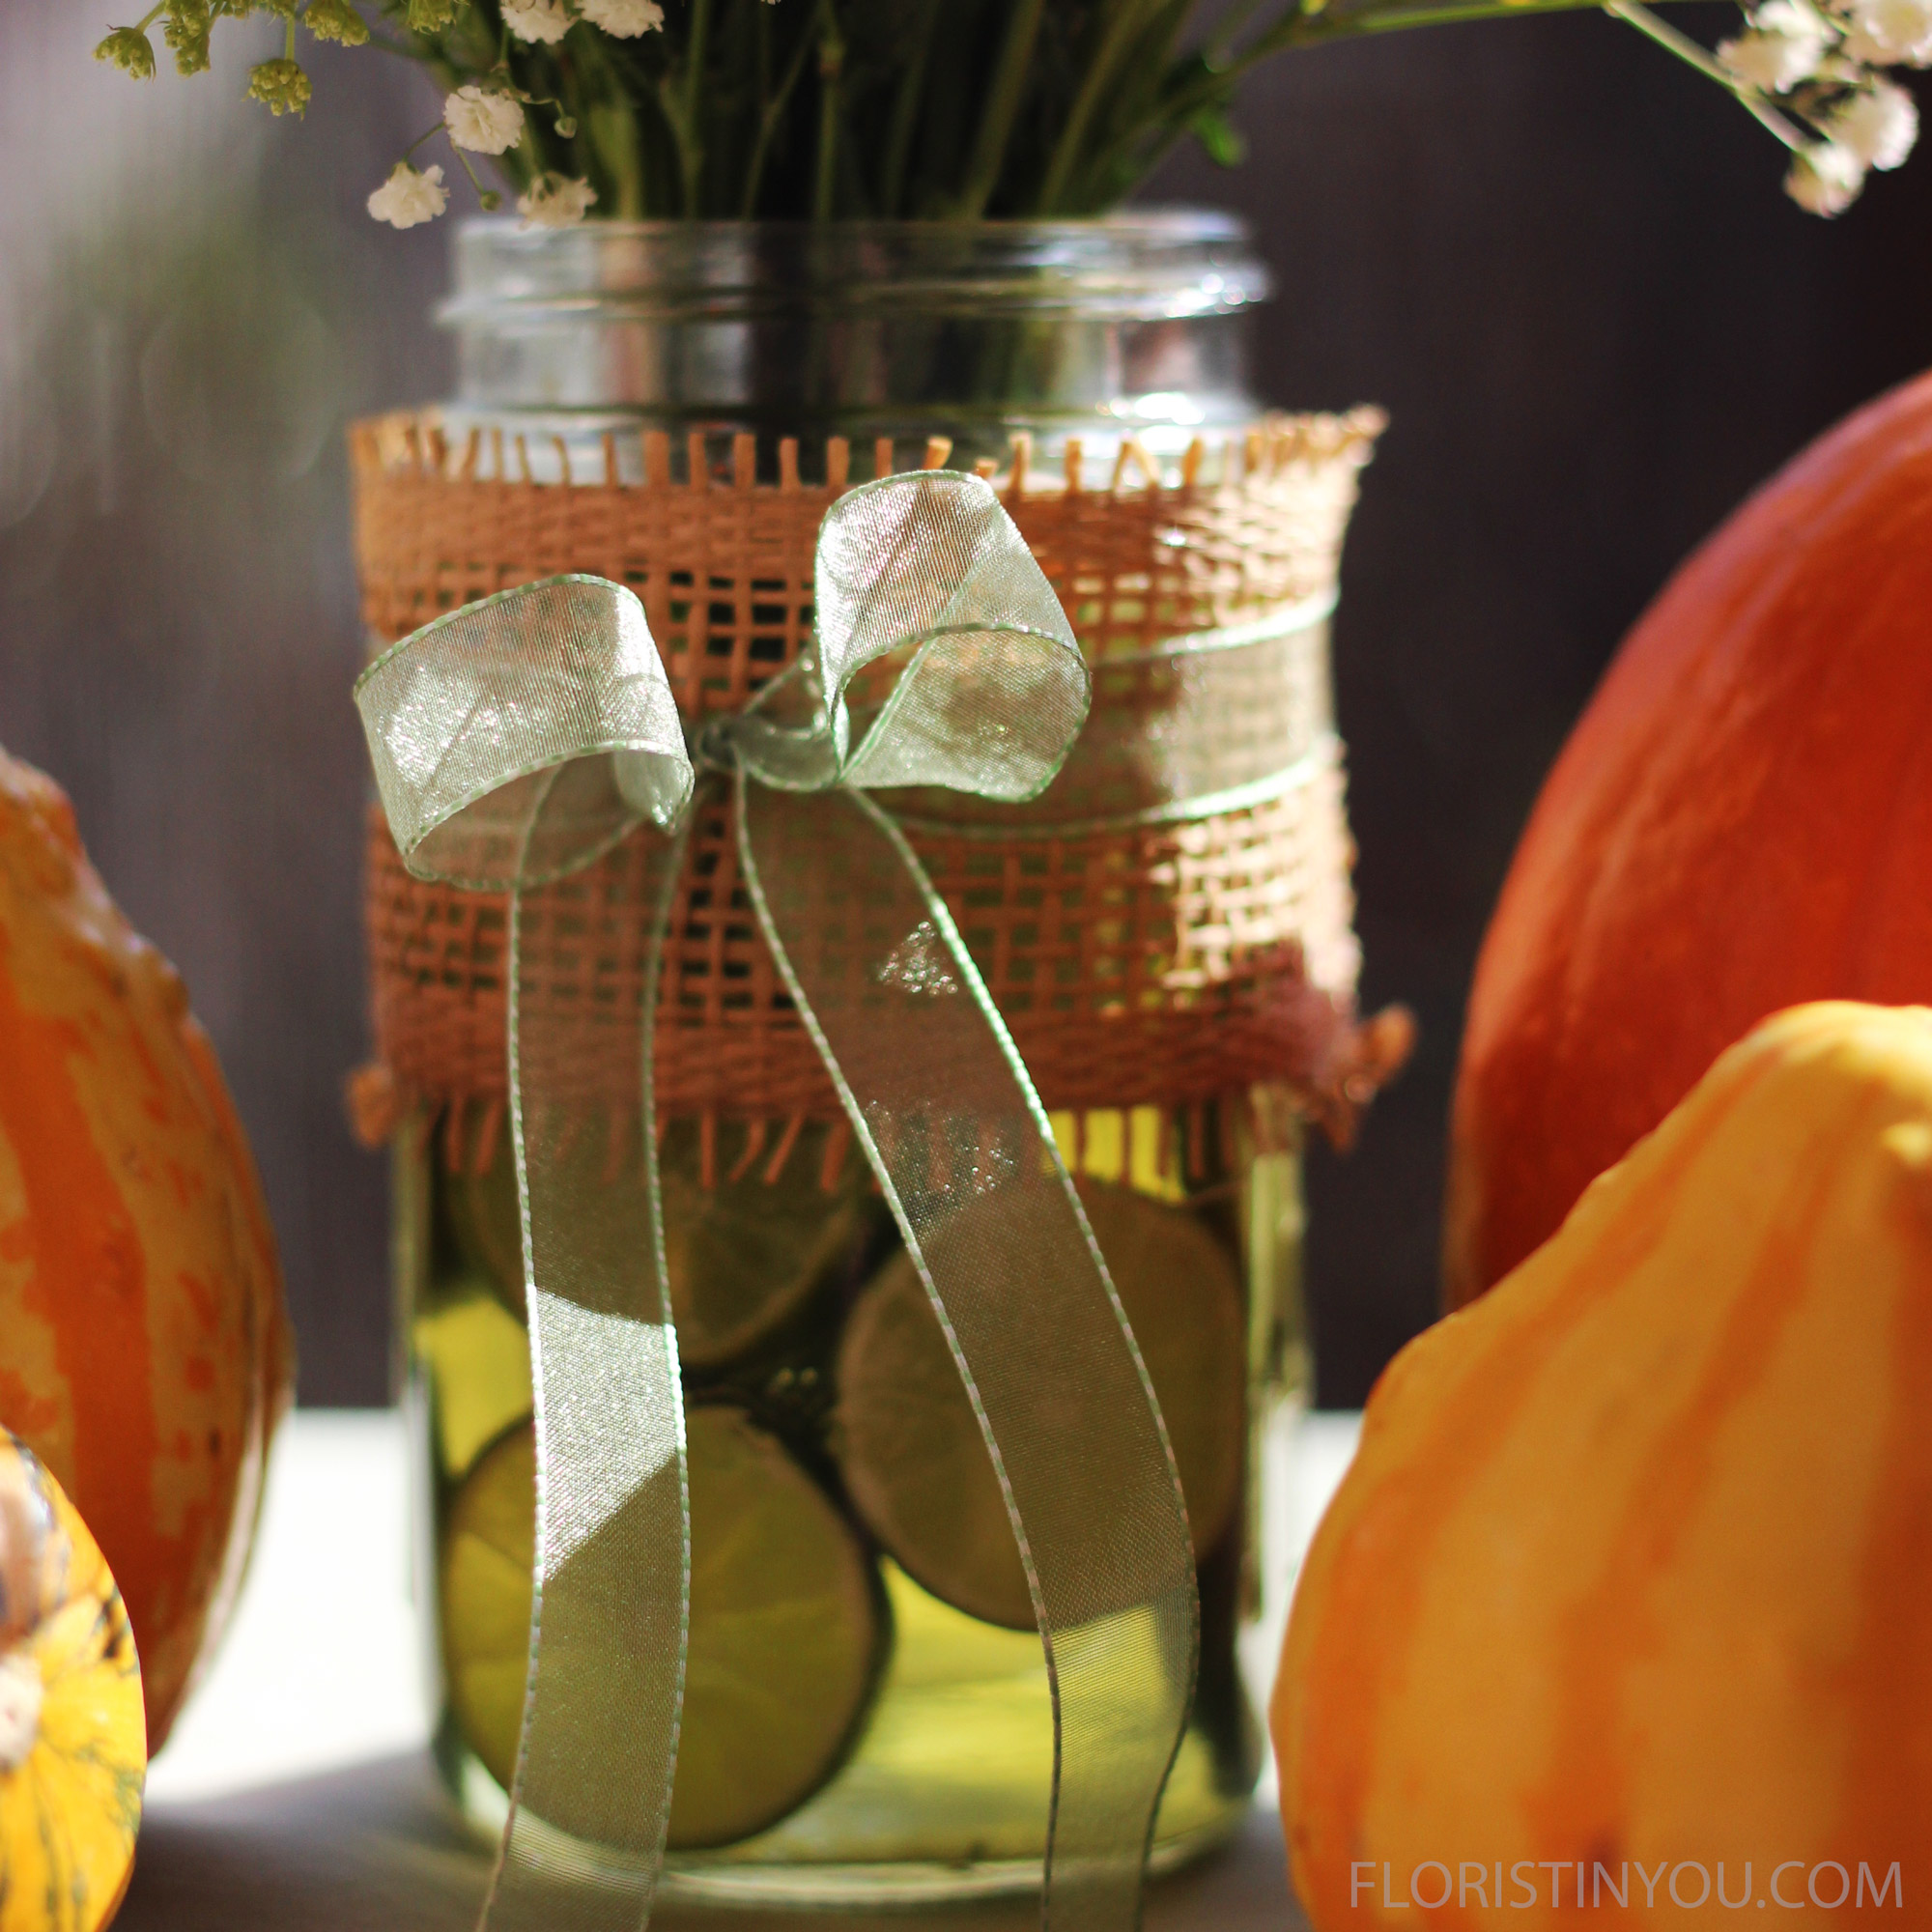 Tie the green ribbon with a bow in front around the jar.